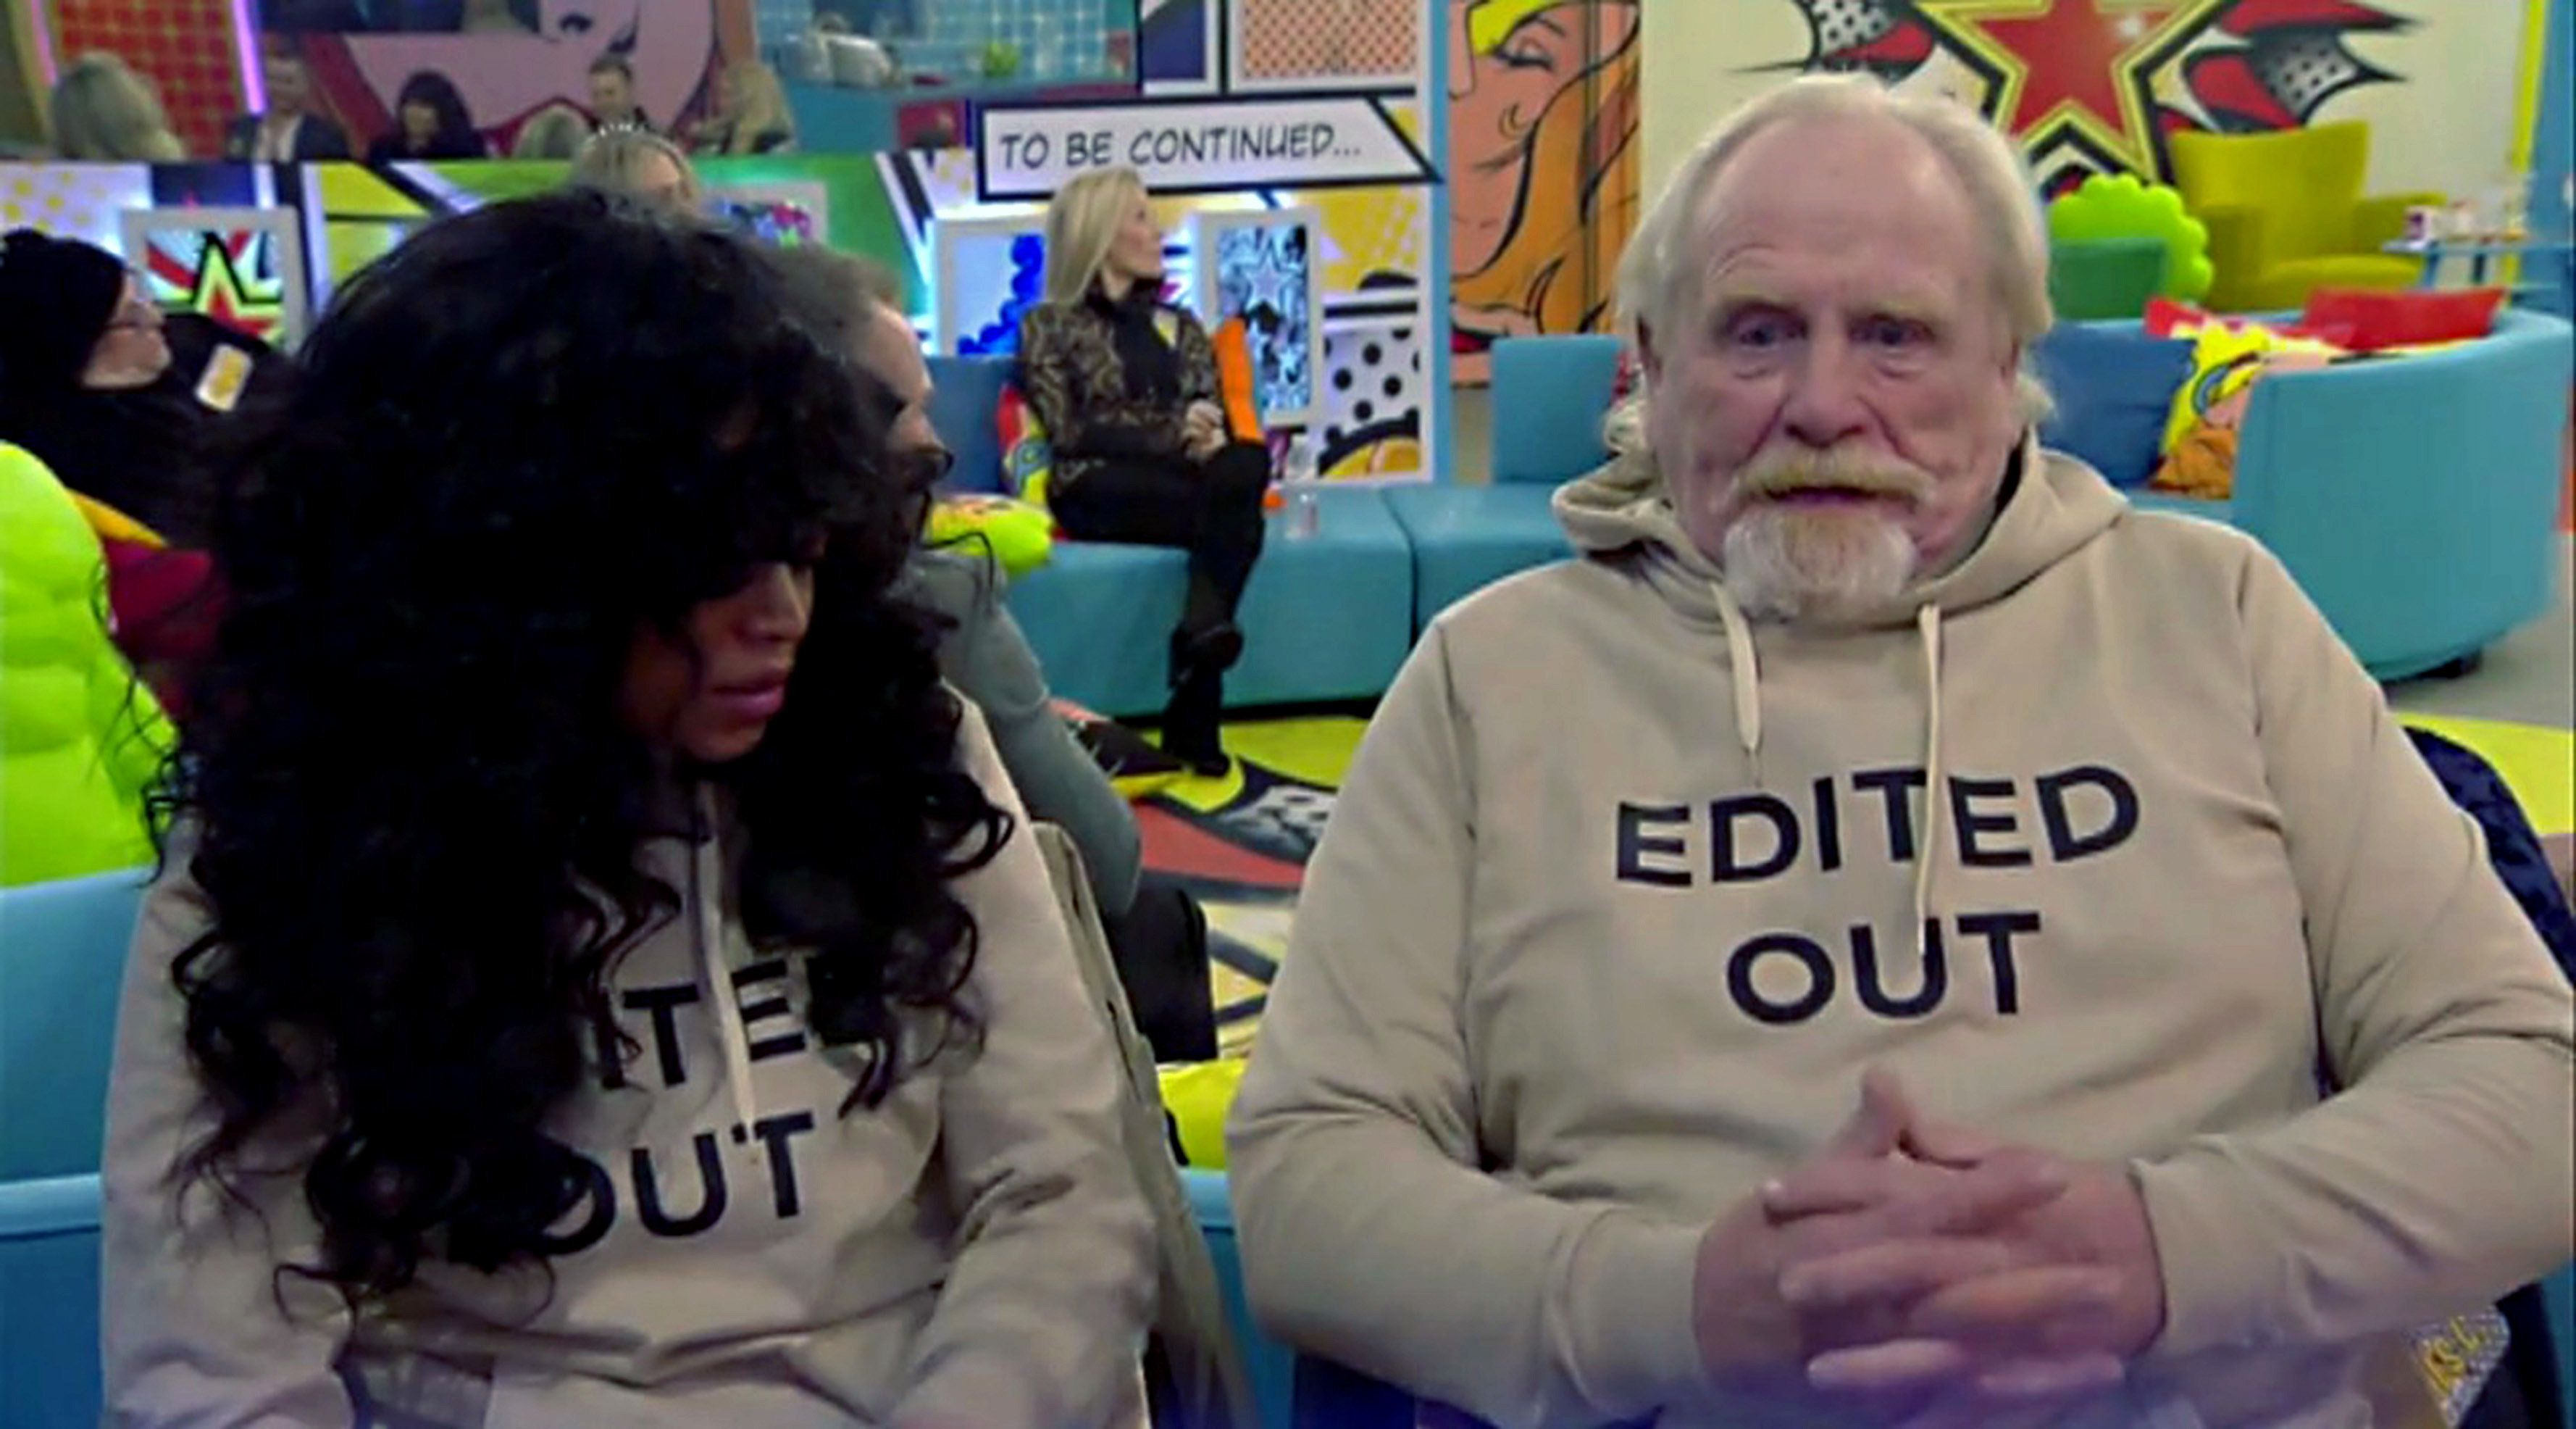 'Celebrity Big Brother' Producers Finally Explain The Point Of The 'Edited Out'